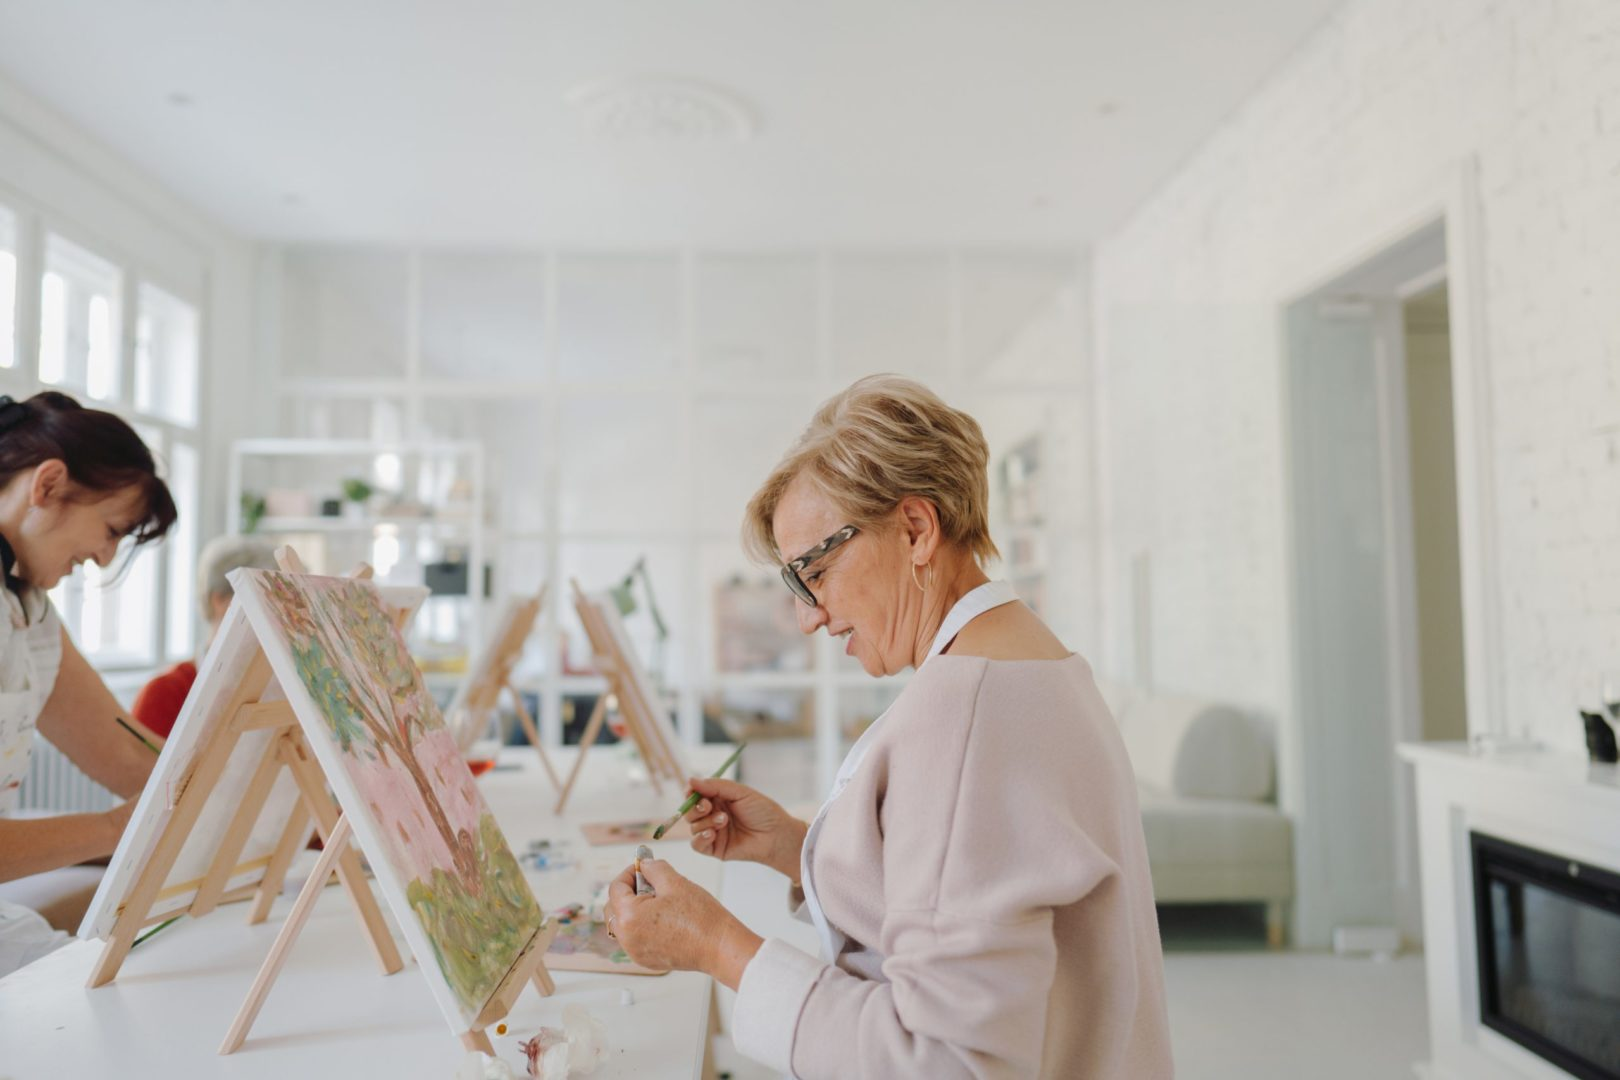 Photo of a senior woman taking painting classes with her friends in an art studio; connecting with her friends and learning how to paint together. Woman is wearing a light pink sweater and white smock. She is painting a tree with leaves and grass under it.